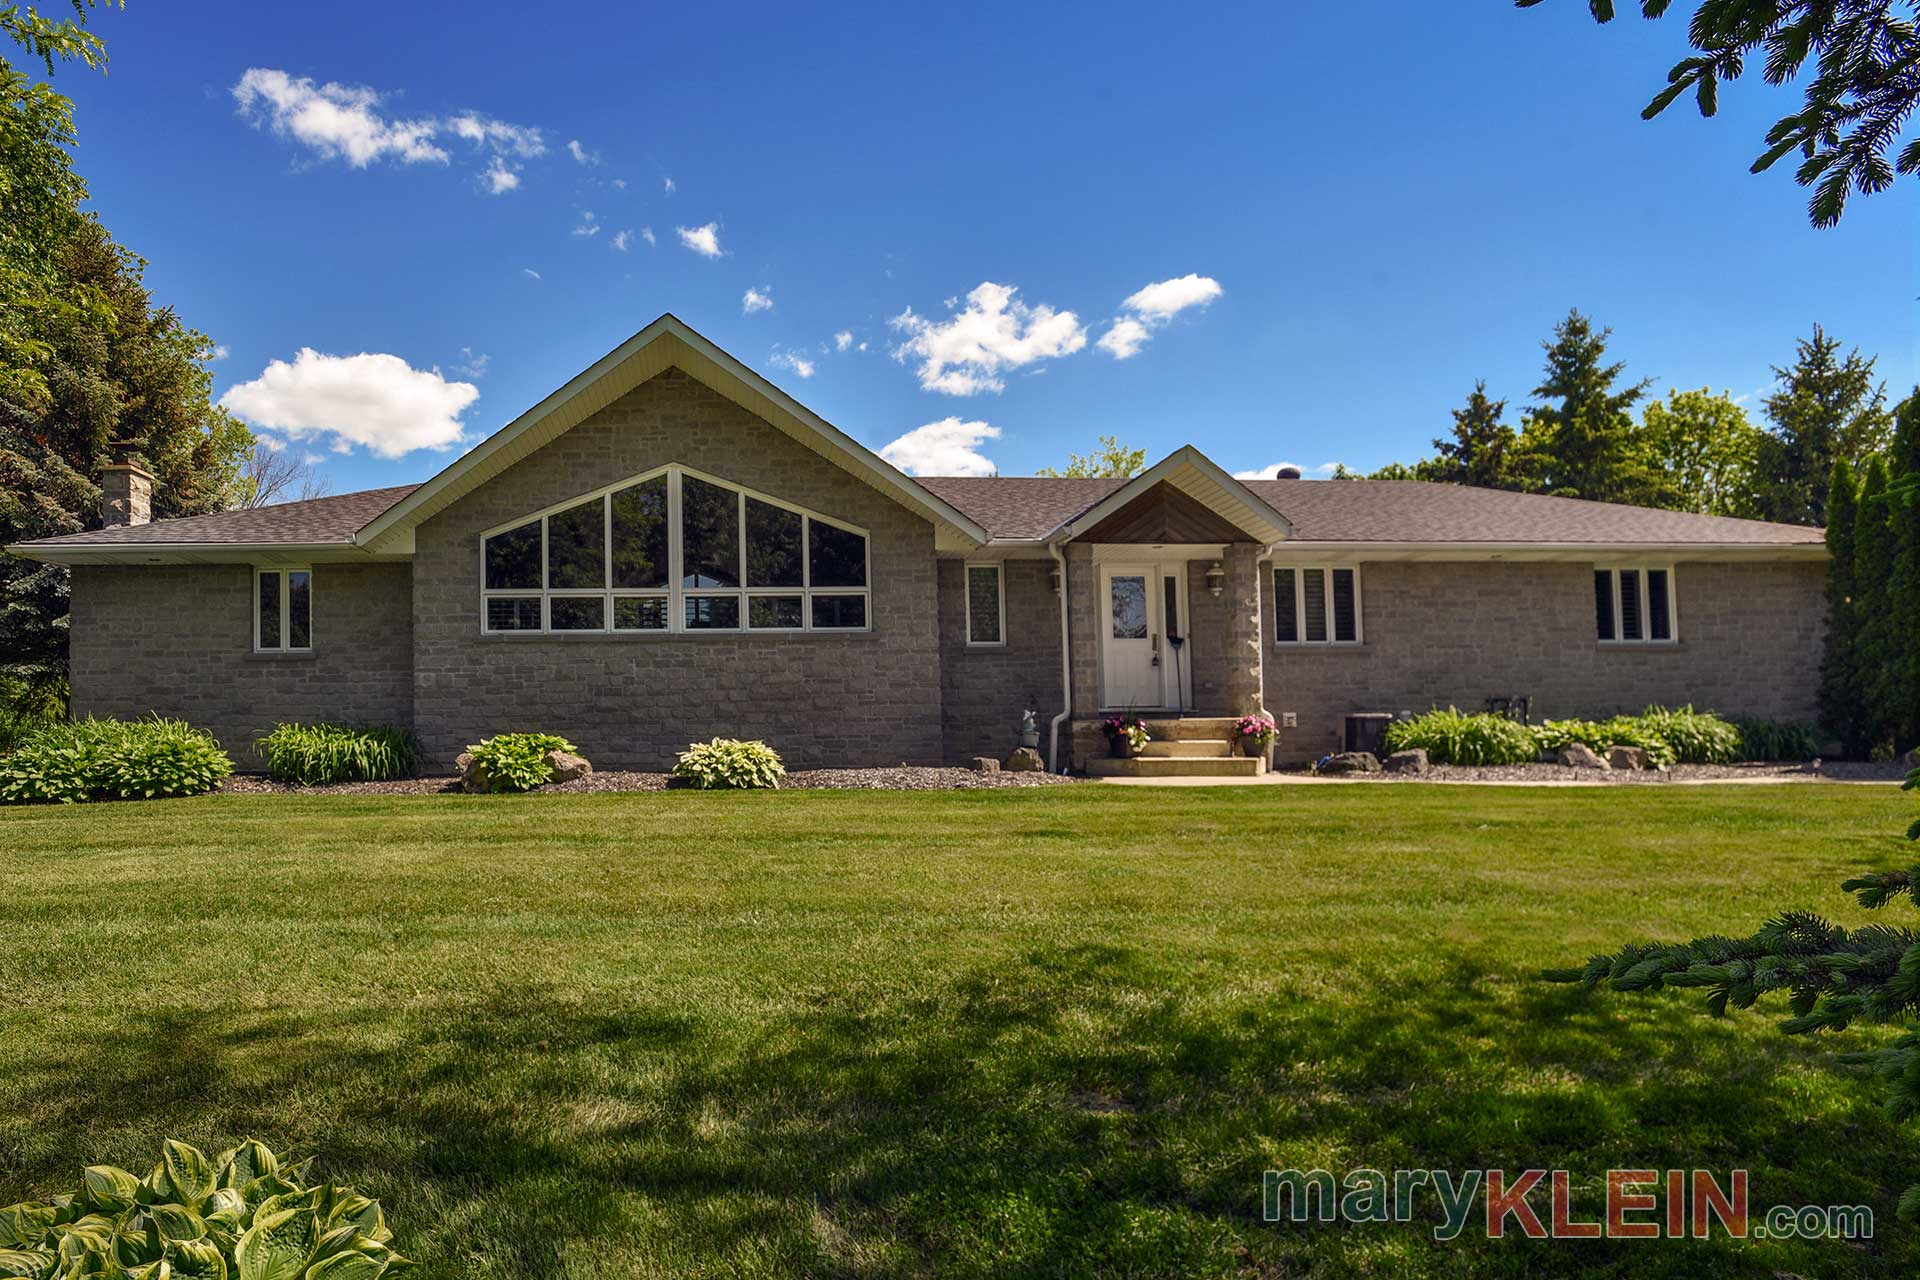 Stone Bungalow, For sale, Caledon, 4+1 Bedroom, Mary klein